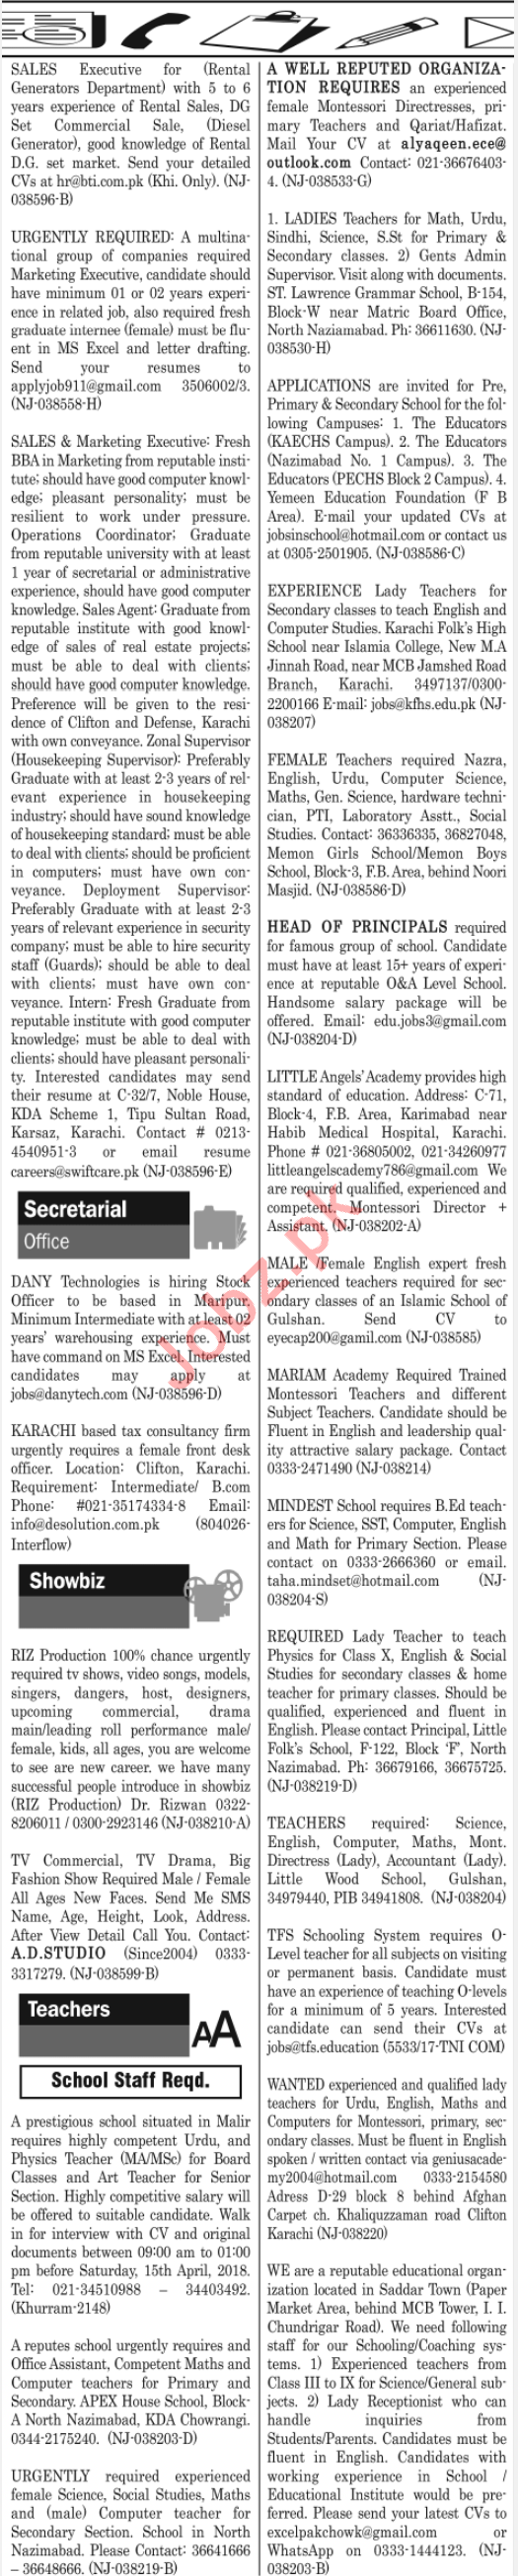 Daily Jang Classified Jobs 2018 for Miscellaneous Staff